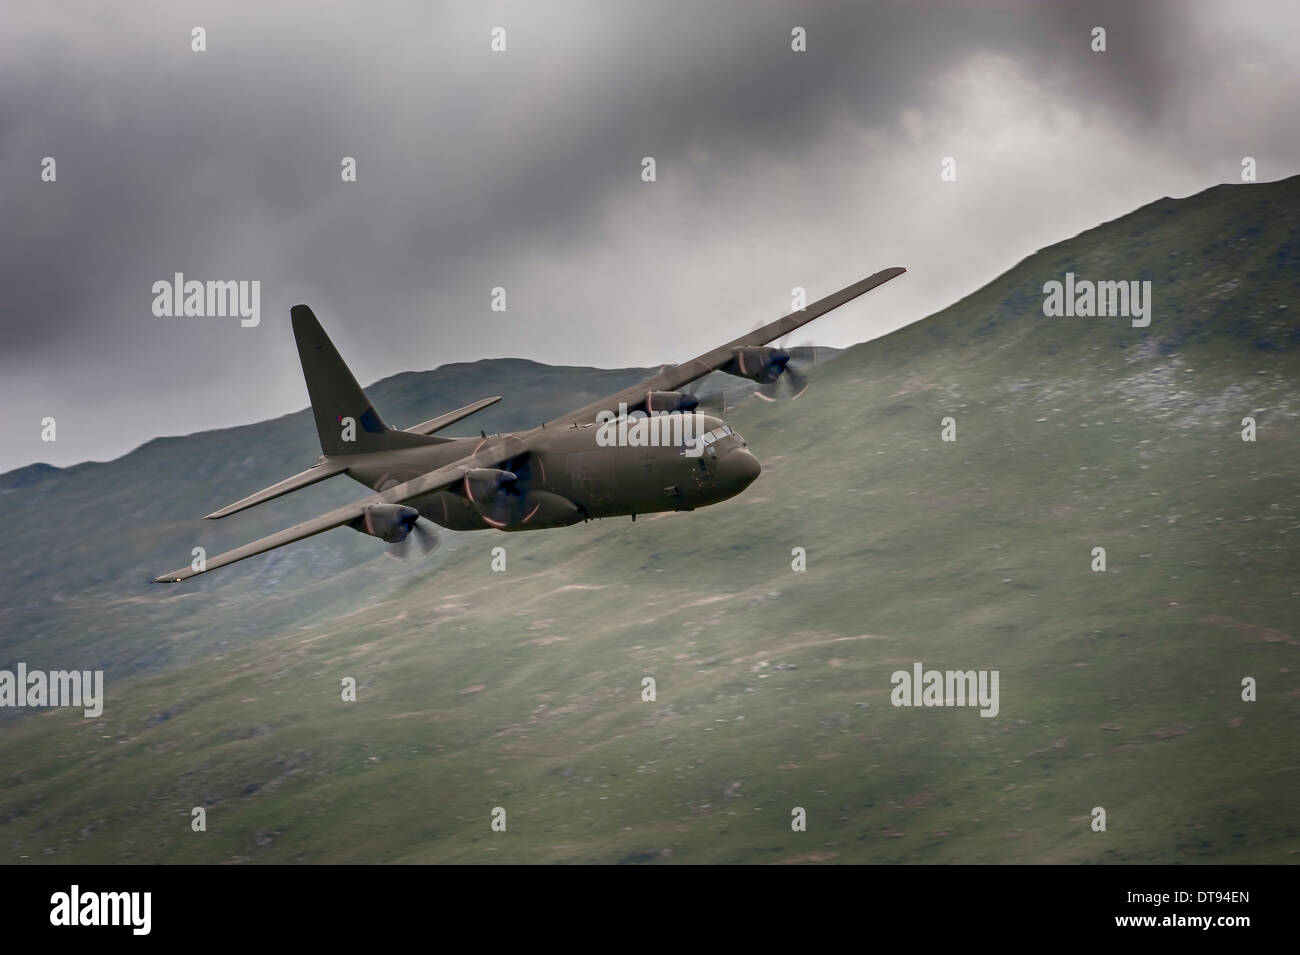 C-130 Hercules tactical transport aircraft, mach loop - Stock Image